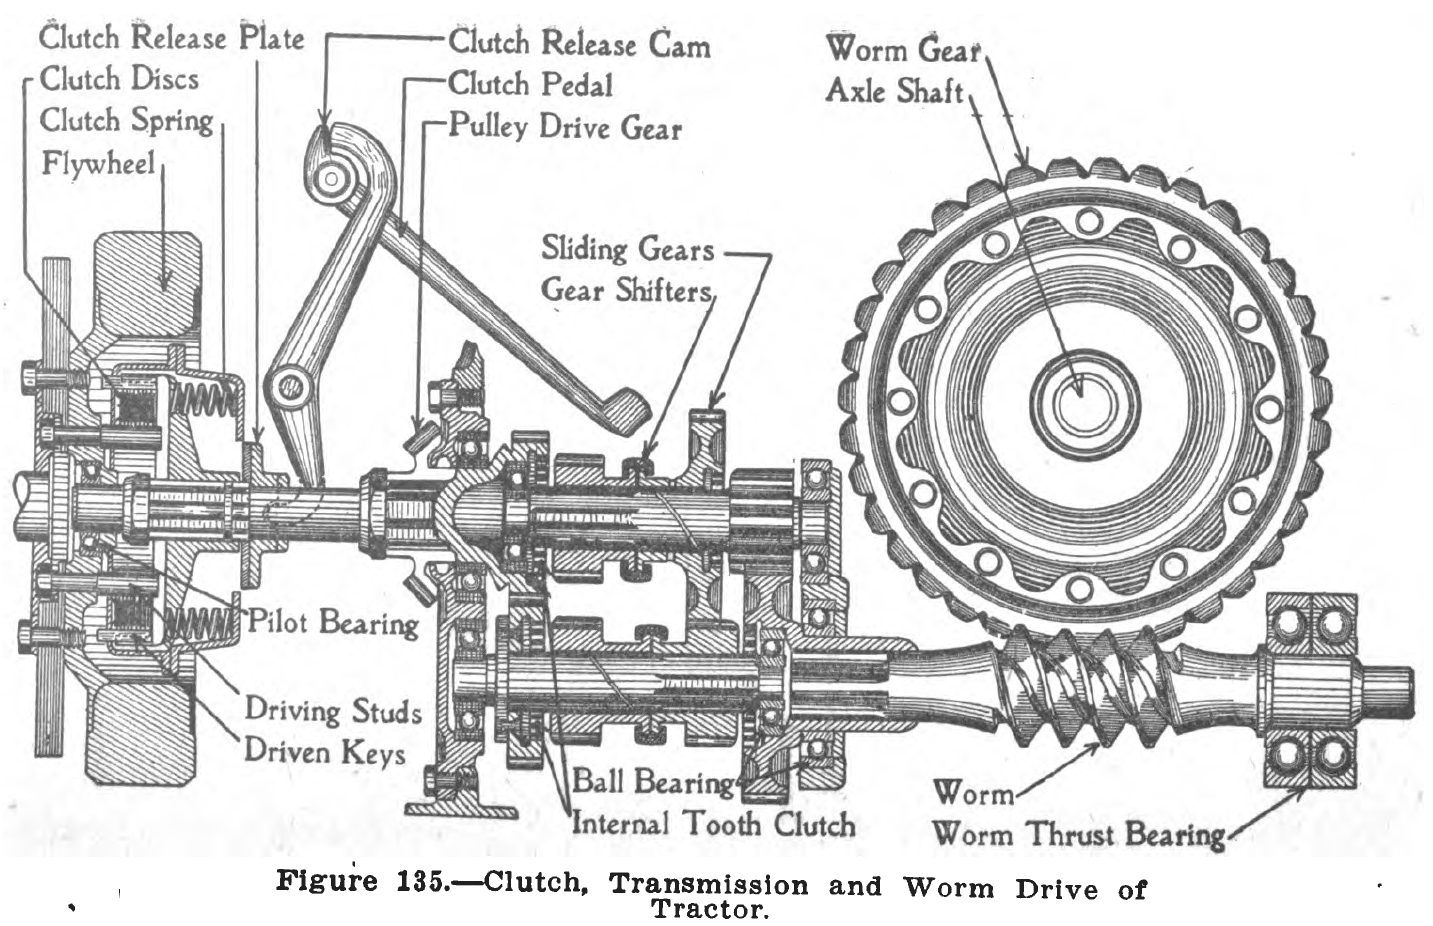 Manly_1919_Fig_135_Fordson_clutch_trans_rear file manly 1919 fig 135 fordson clutch trans rear png wikimedia fordson power major wiring diagram at reclaimingppi.co